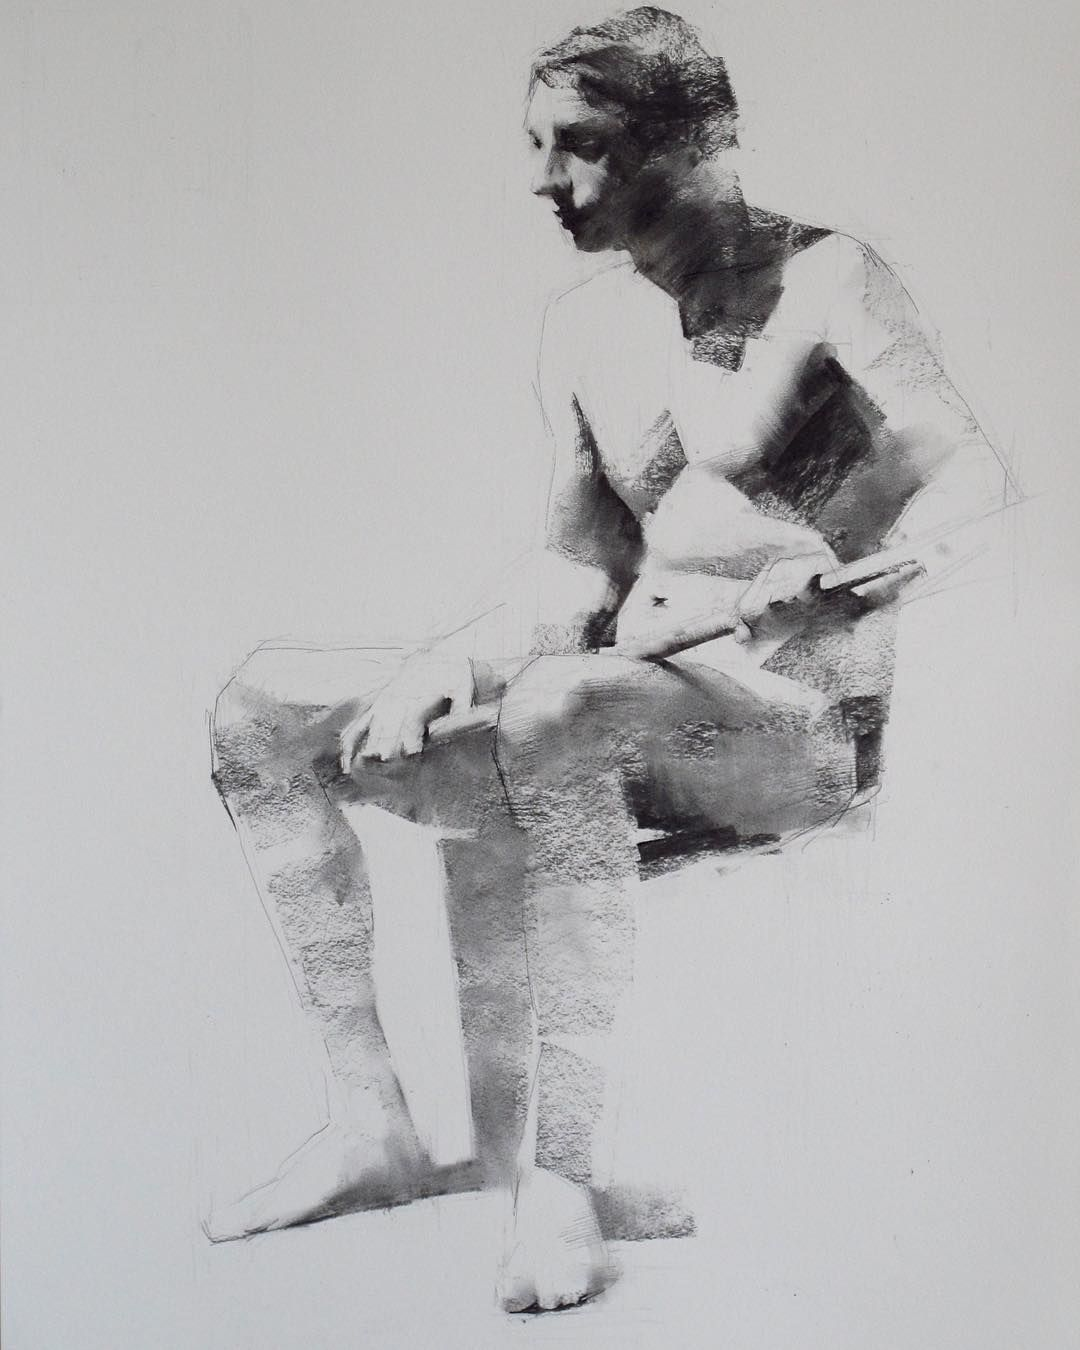 fineart #lifedrawing #sketches #sketchbook #drawing #drawings